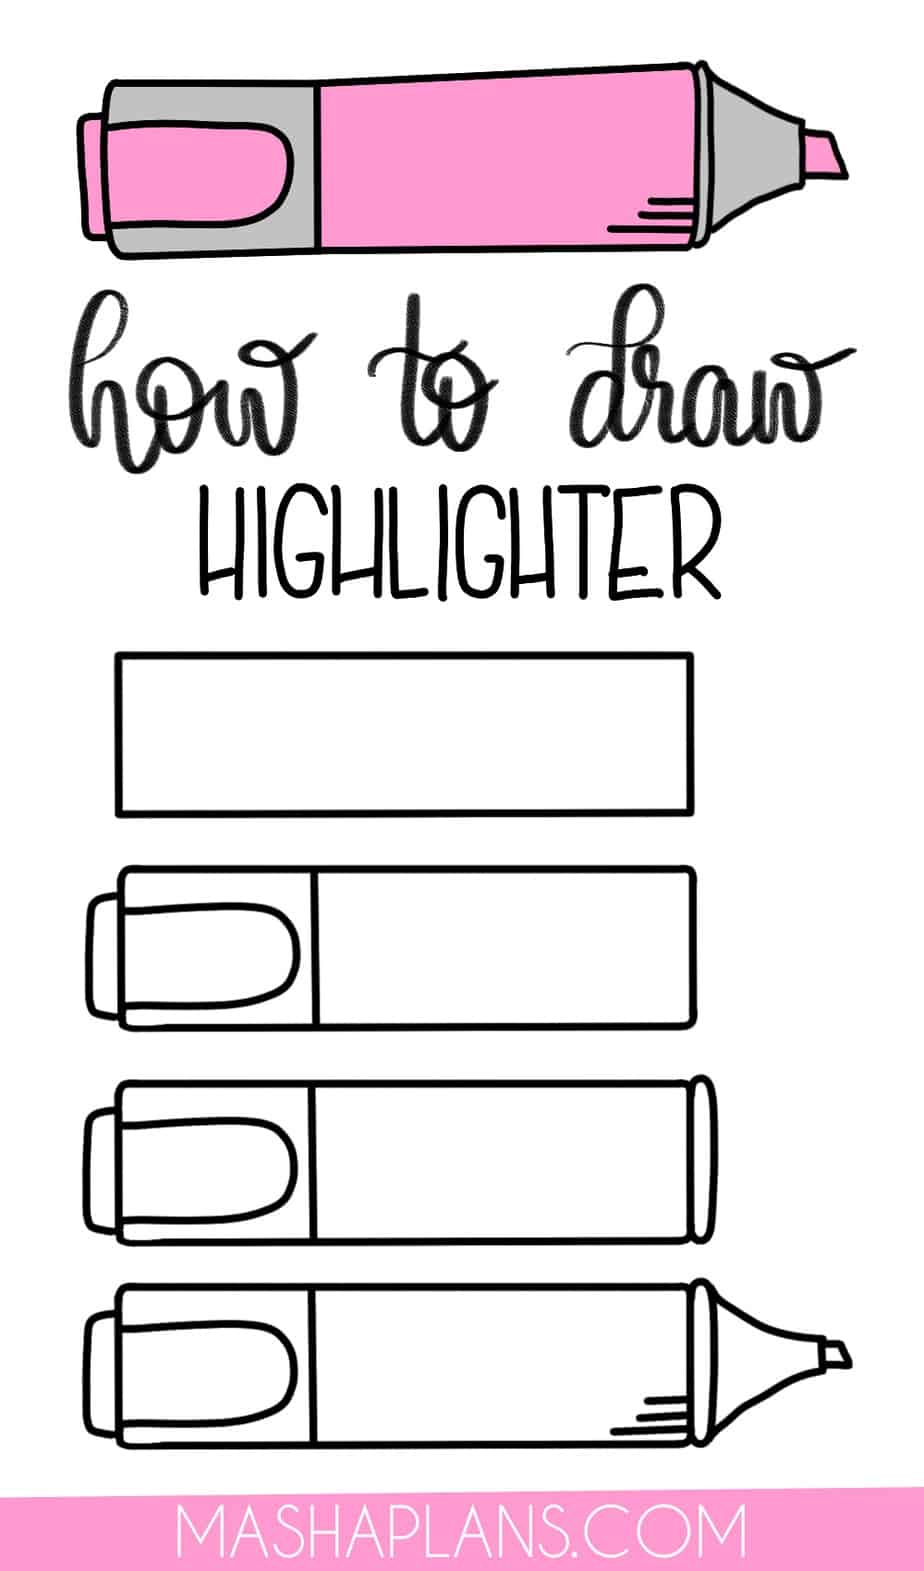 Cute and Easy Stationery Bullet Journal Doodles, Highlighter | Masha Plans